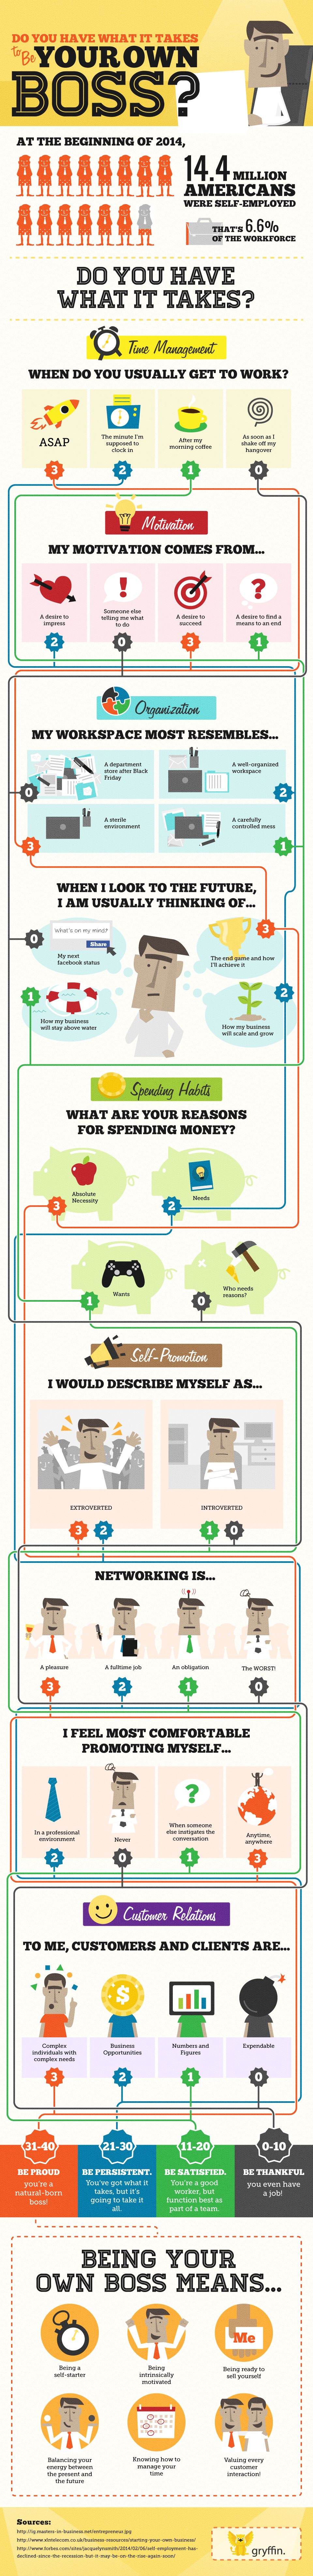 how to be your own boss infographic